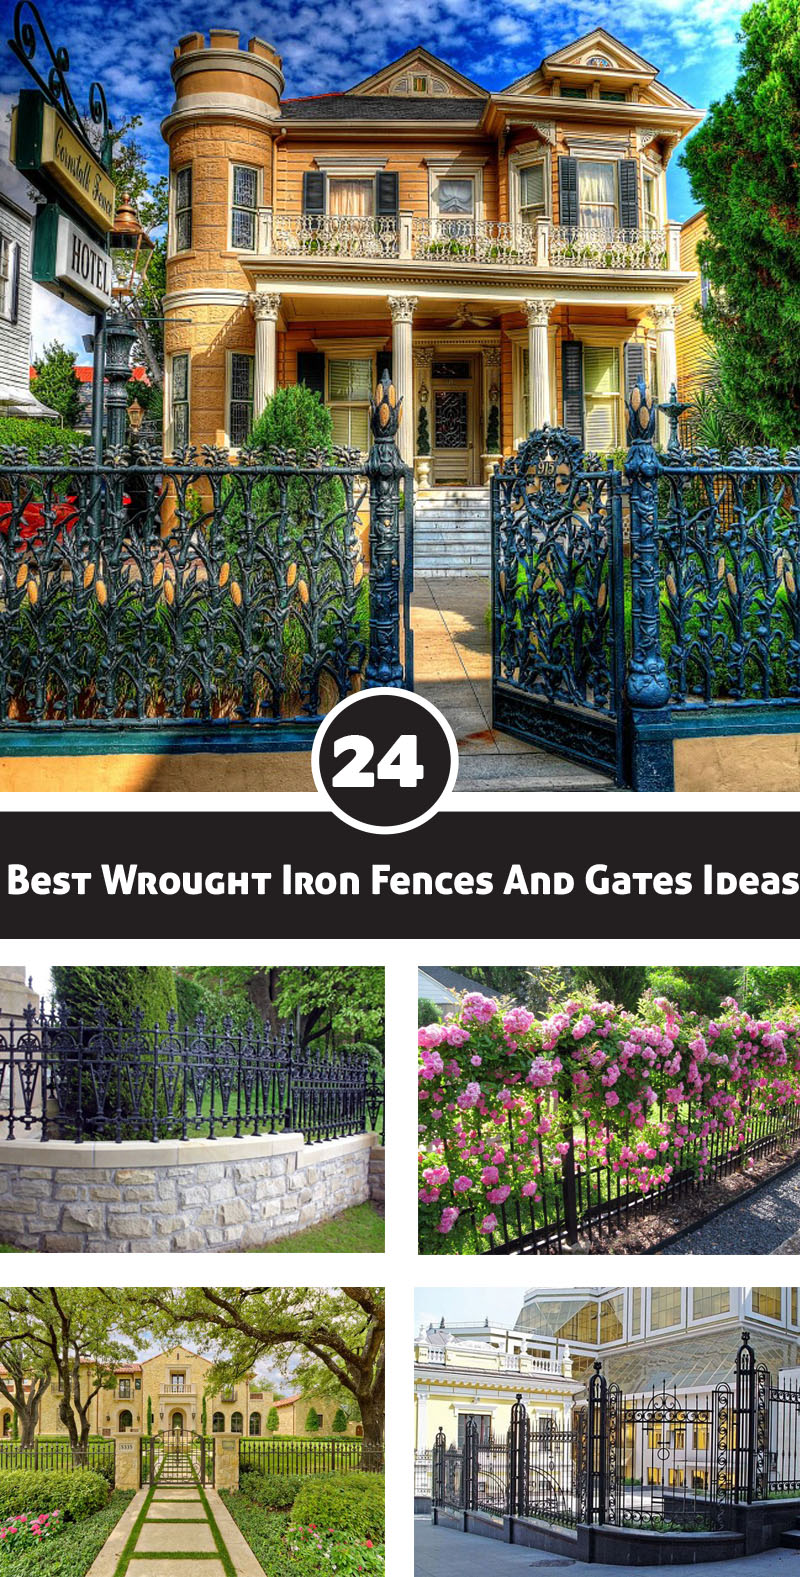 Best wrought iron fences and gates